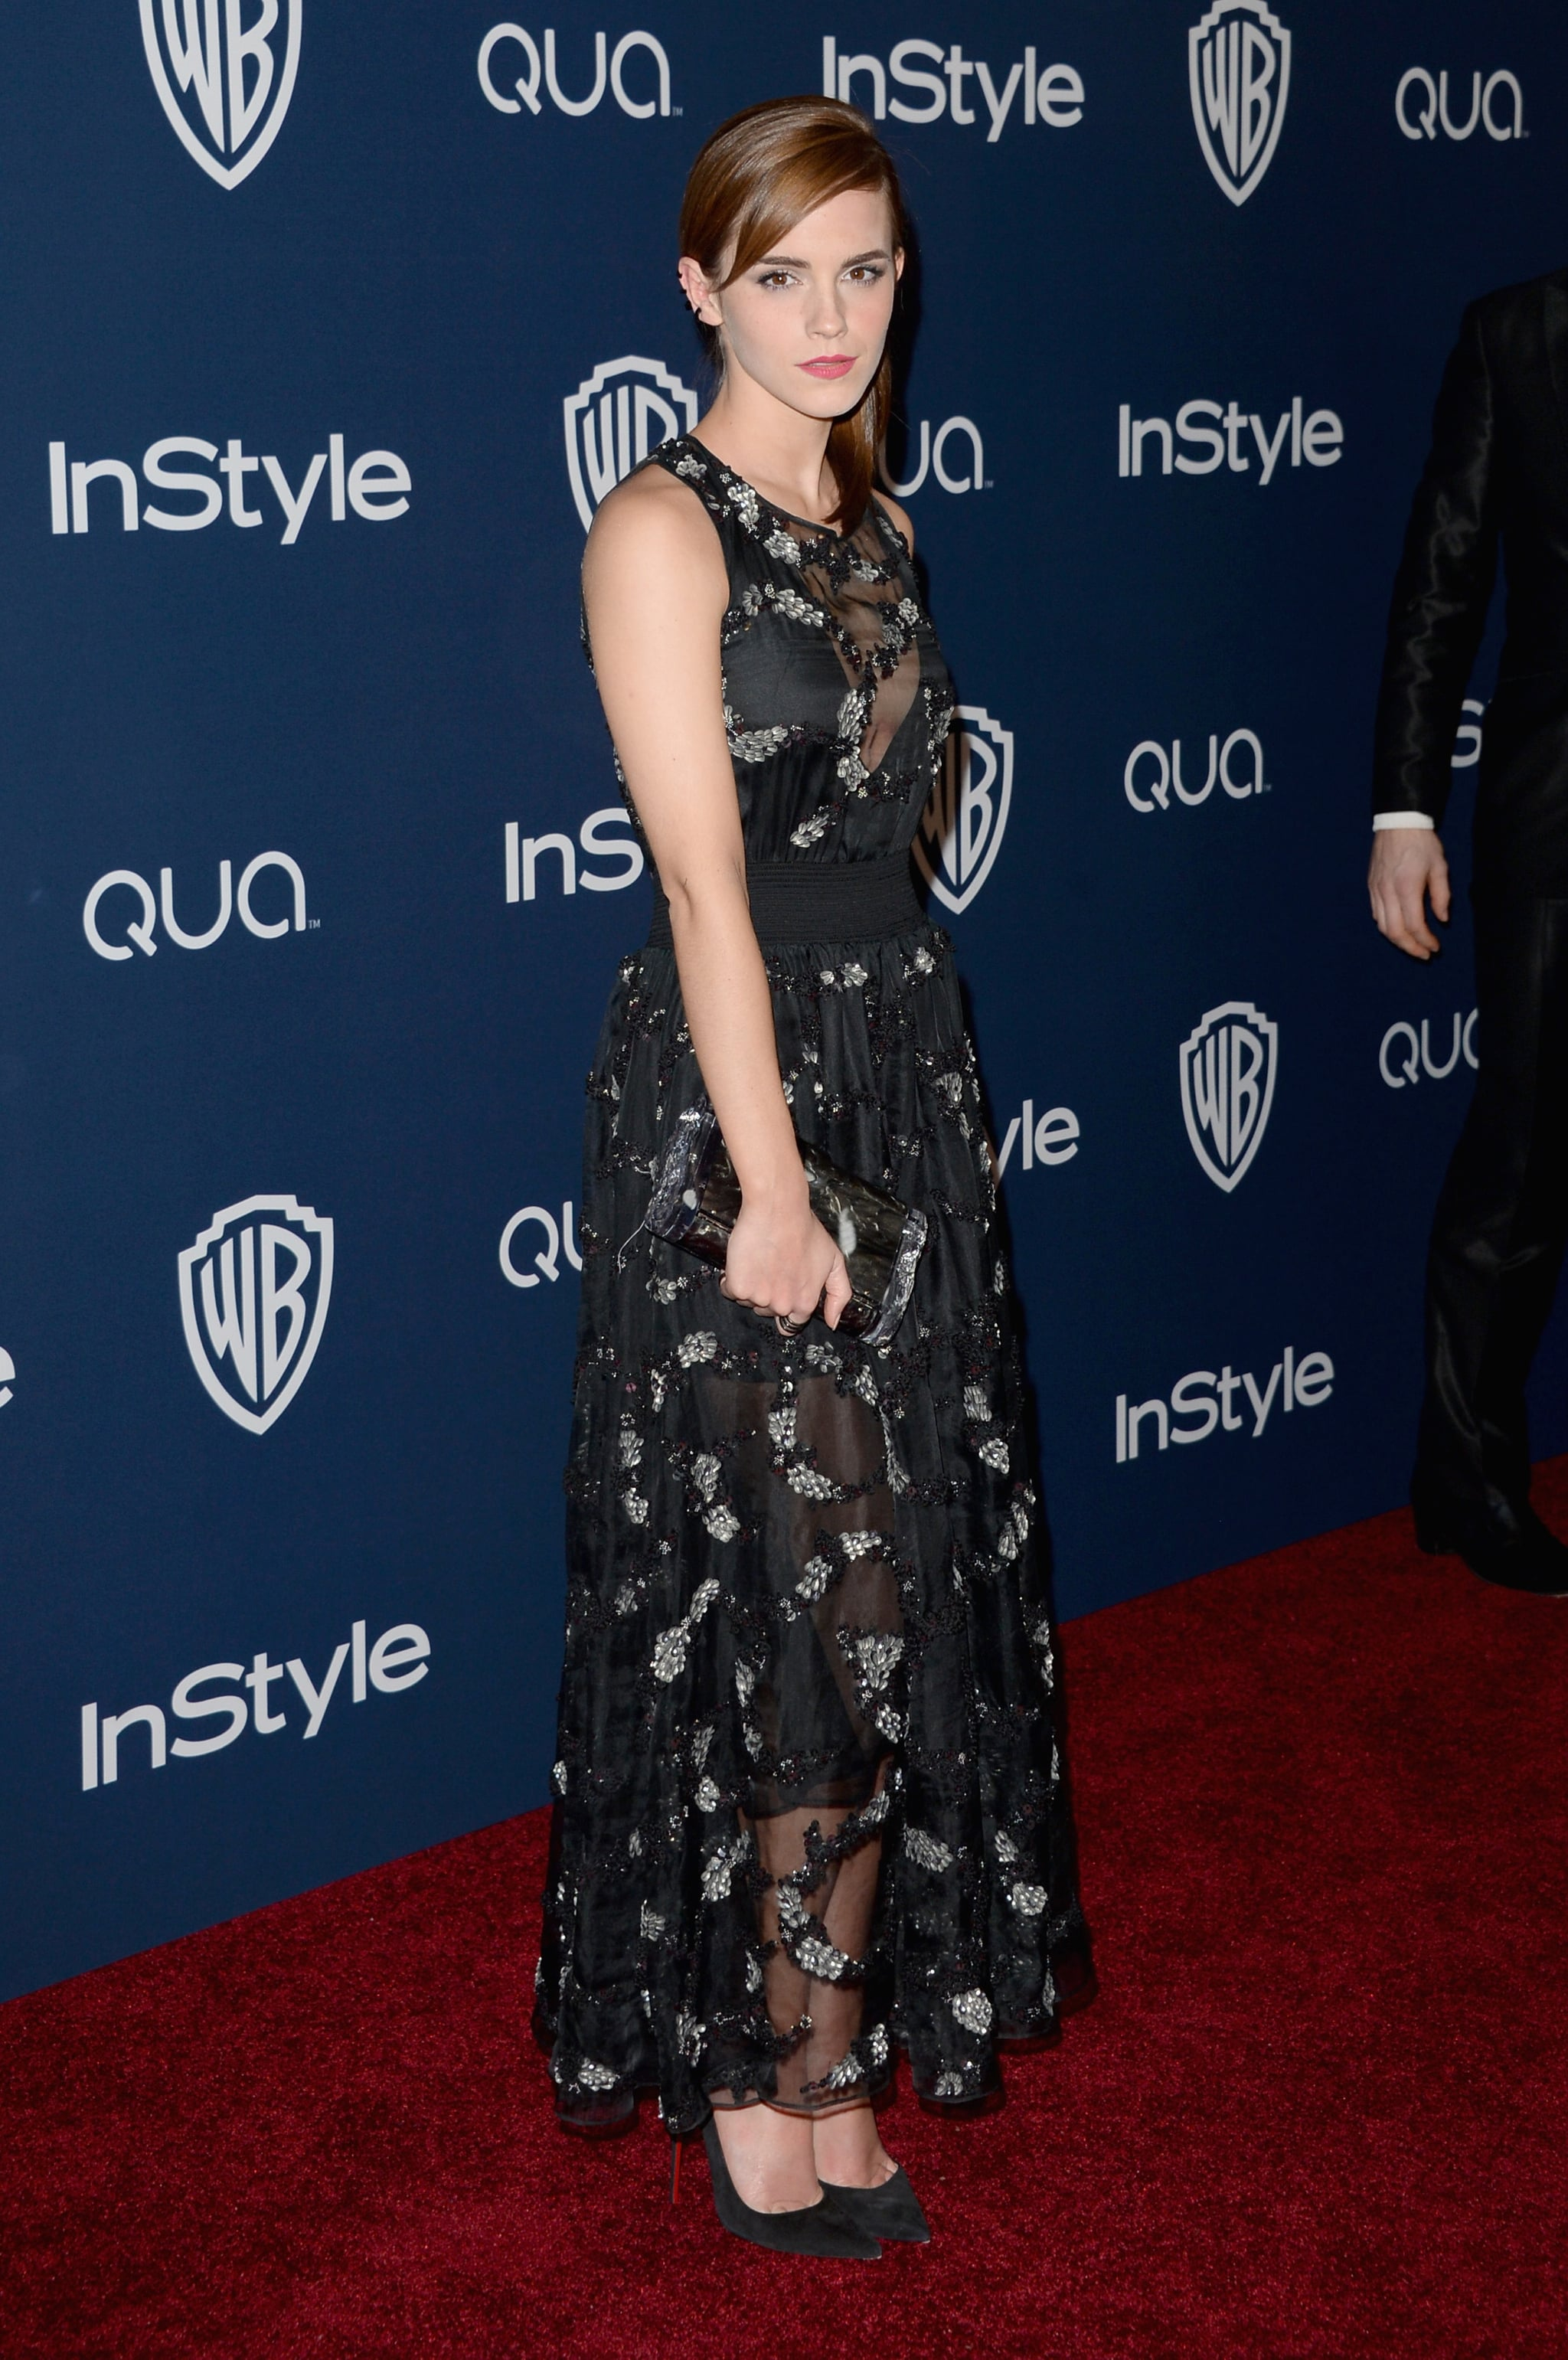 Emma Watson at the InStyle Golden Globes Afterparty